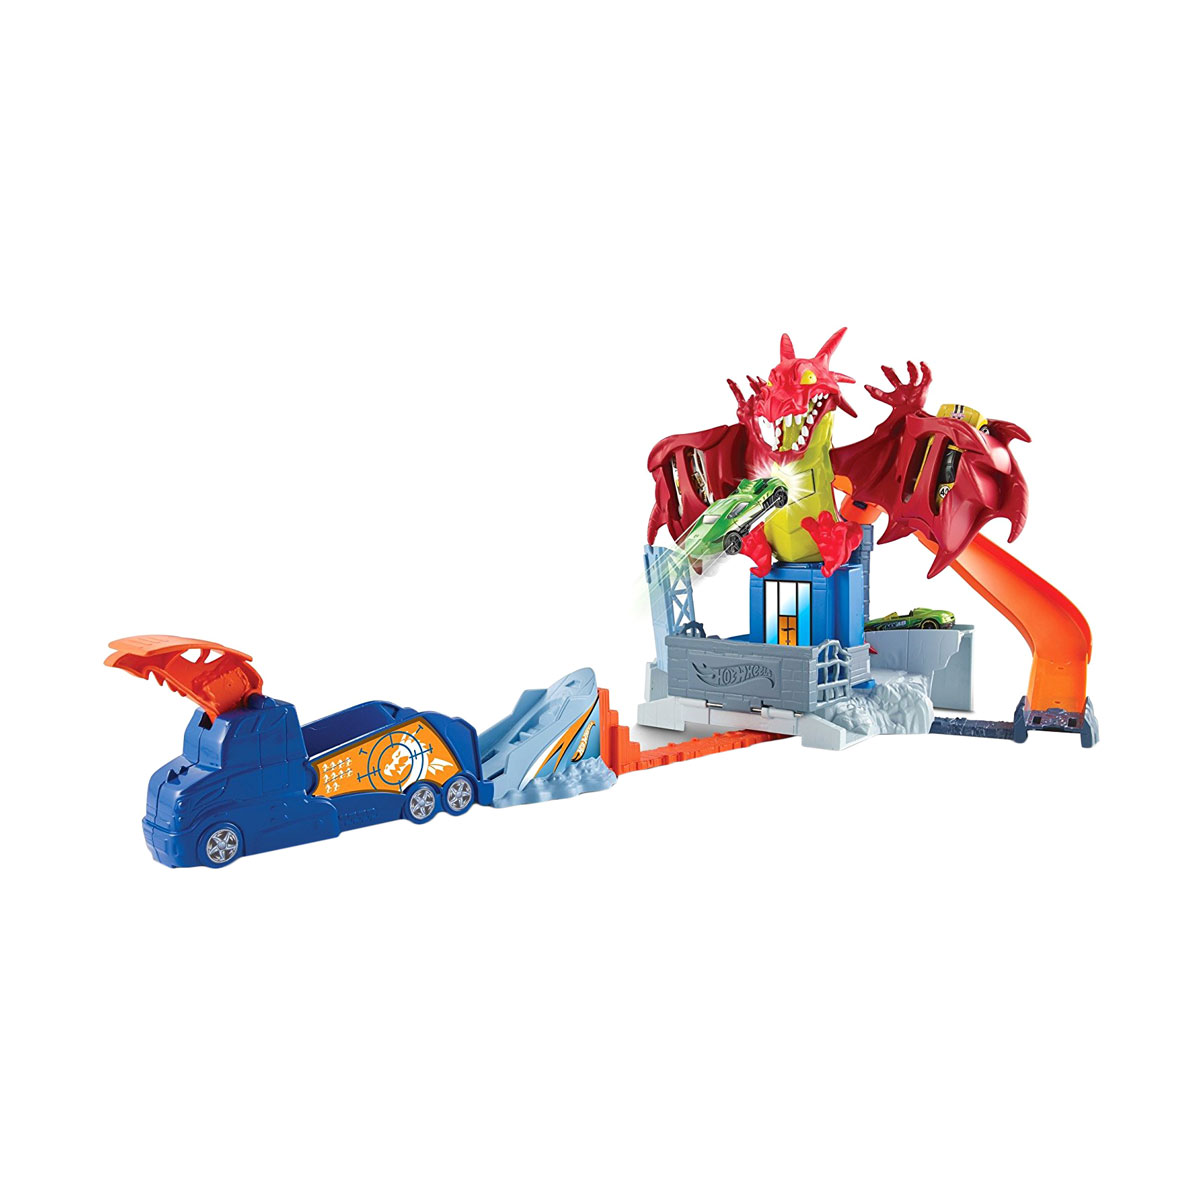 Трек Hot Wheels  Битва с драконом - Hot Wheels, артикул: 165921